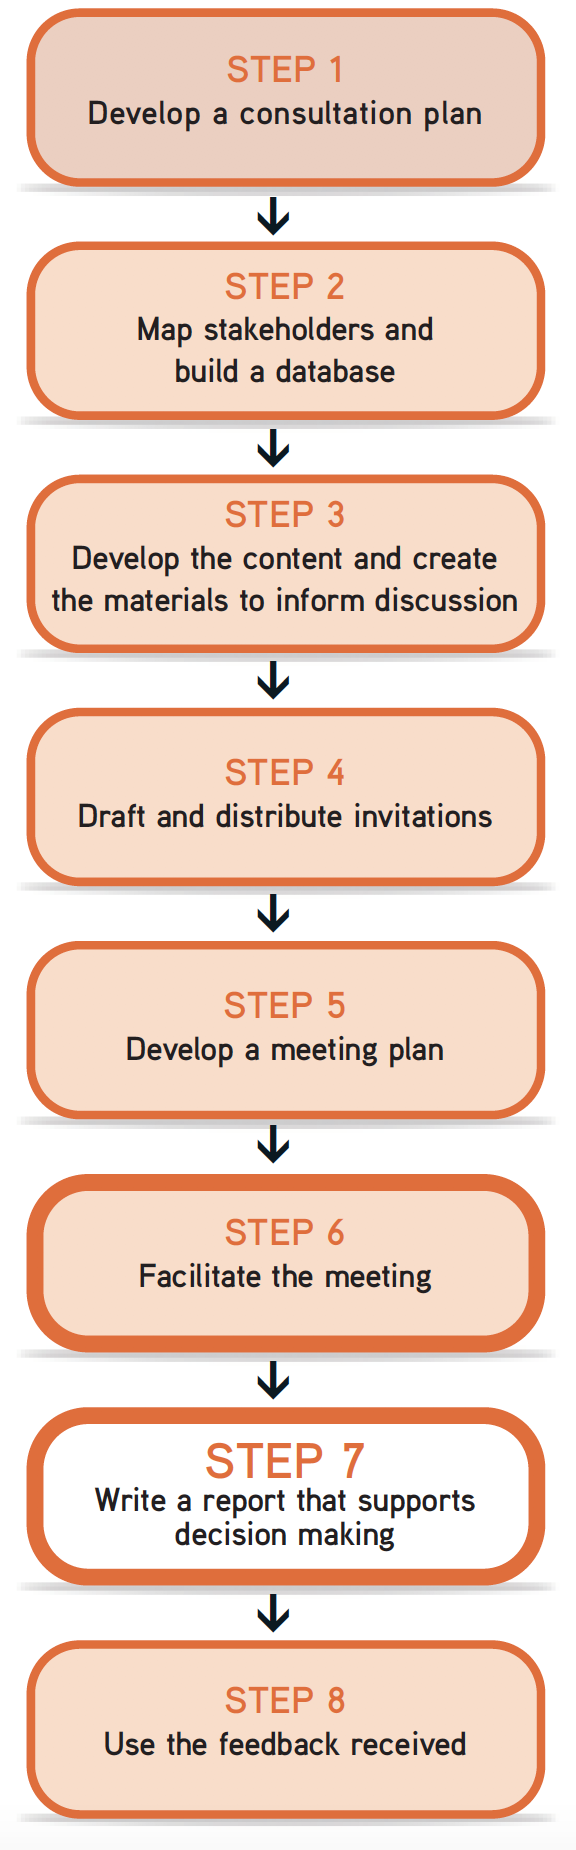 """Picture of steps flow chart, with Step 7 """"write a report that supports decision making"""" highlighted."""